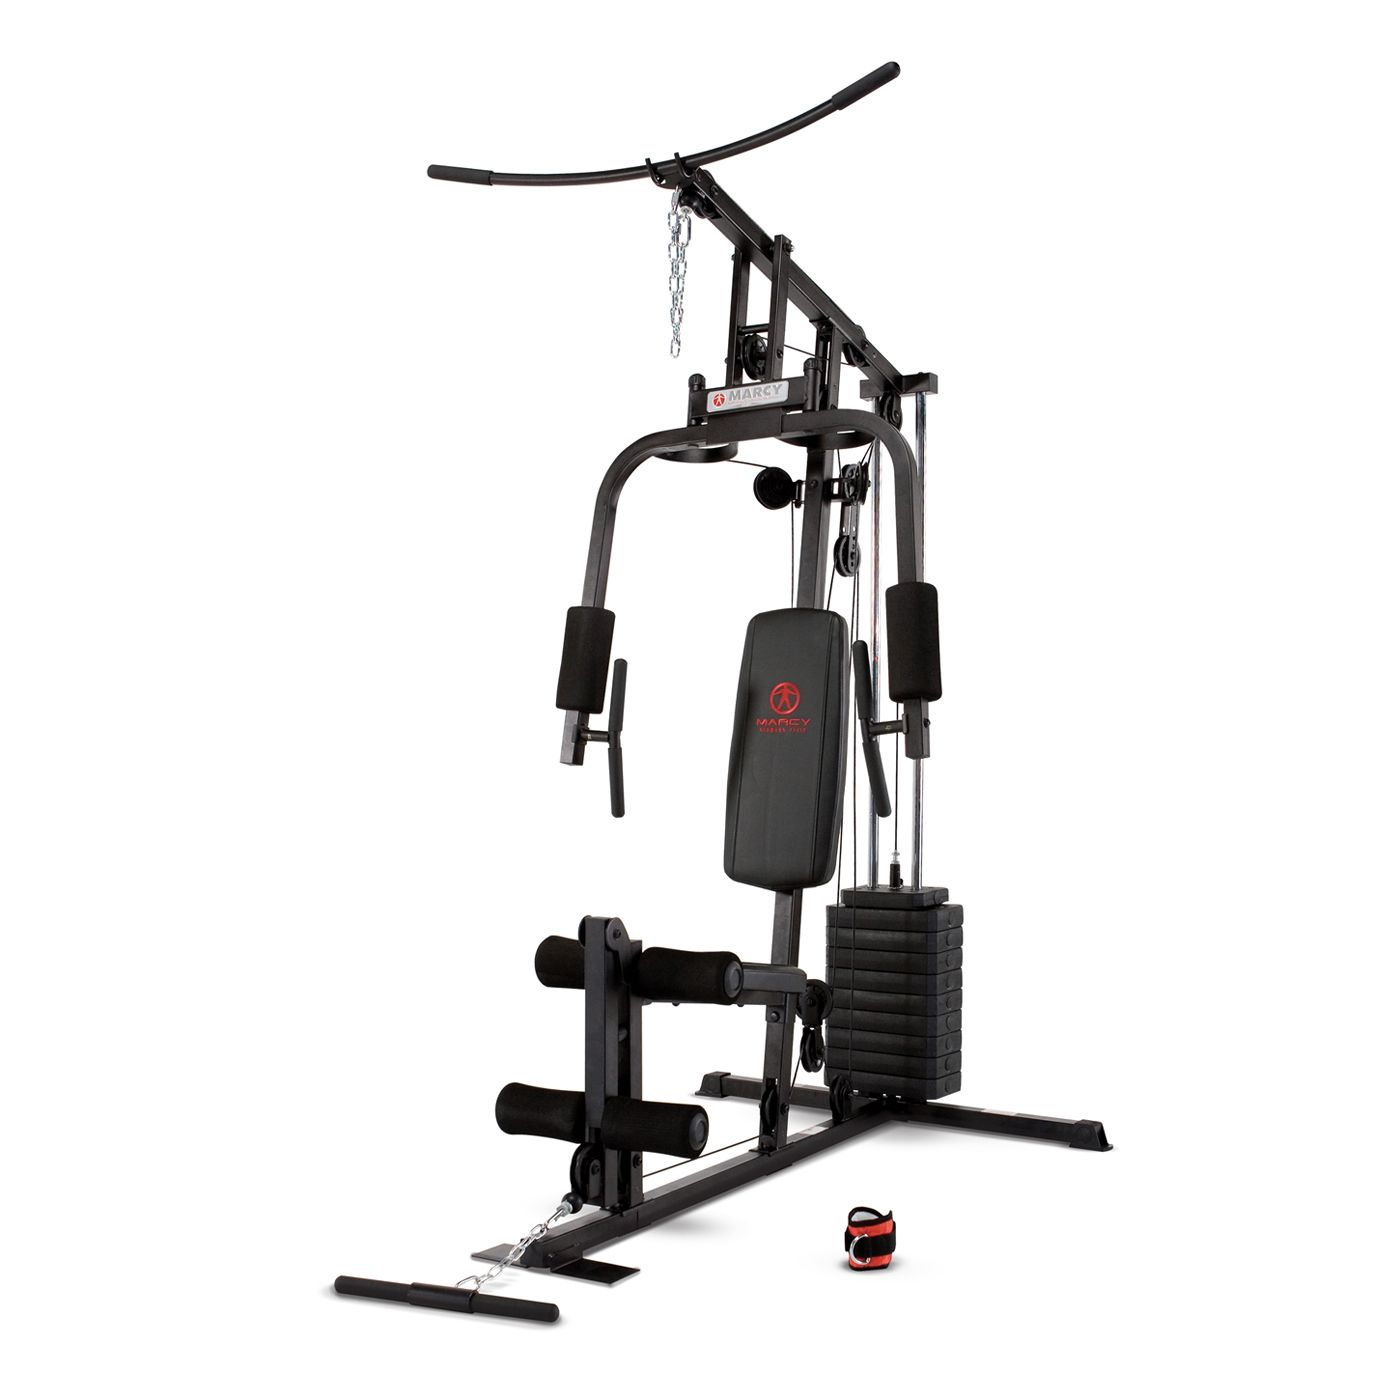 Syndicate Gym supplies gym equipment designed for functional fitness ...